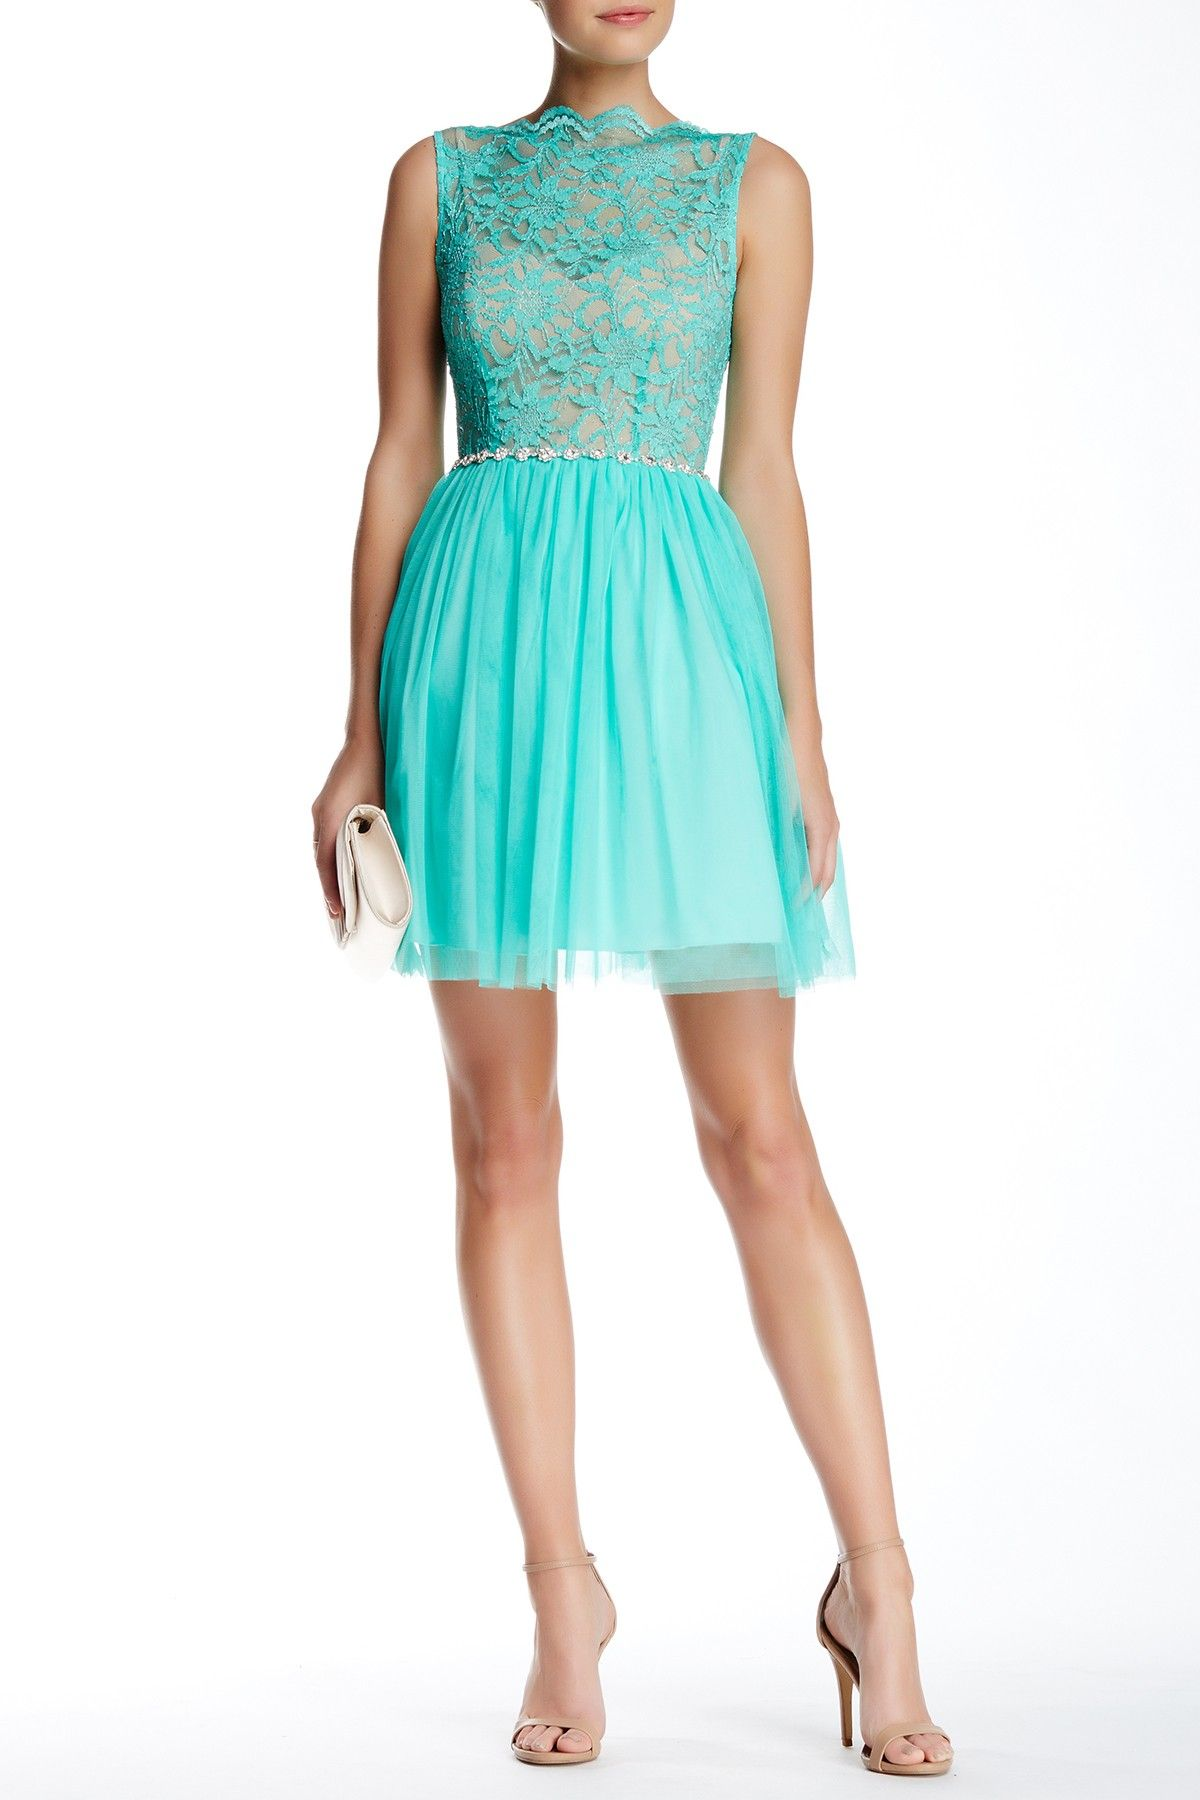 City Triangles | Sleeveless Lace Tulle Party Dress | Triangles ...